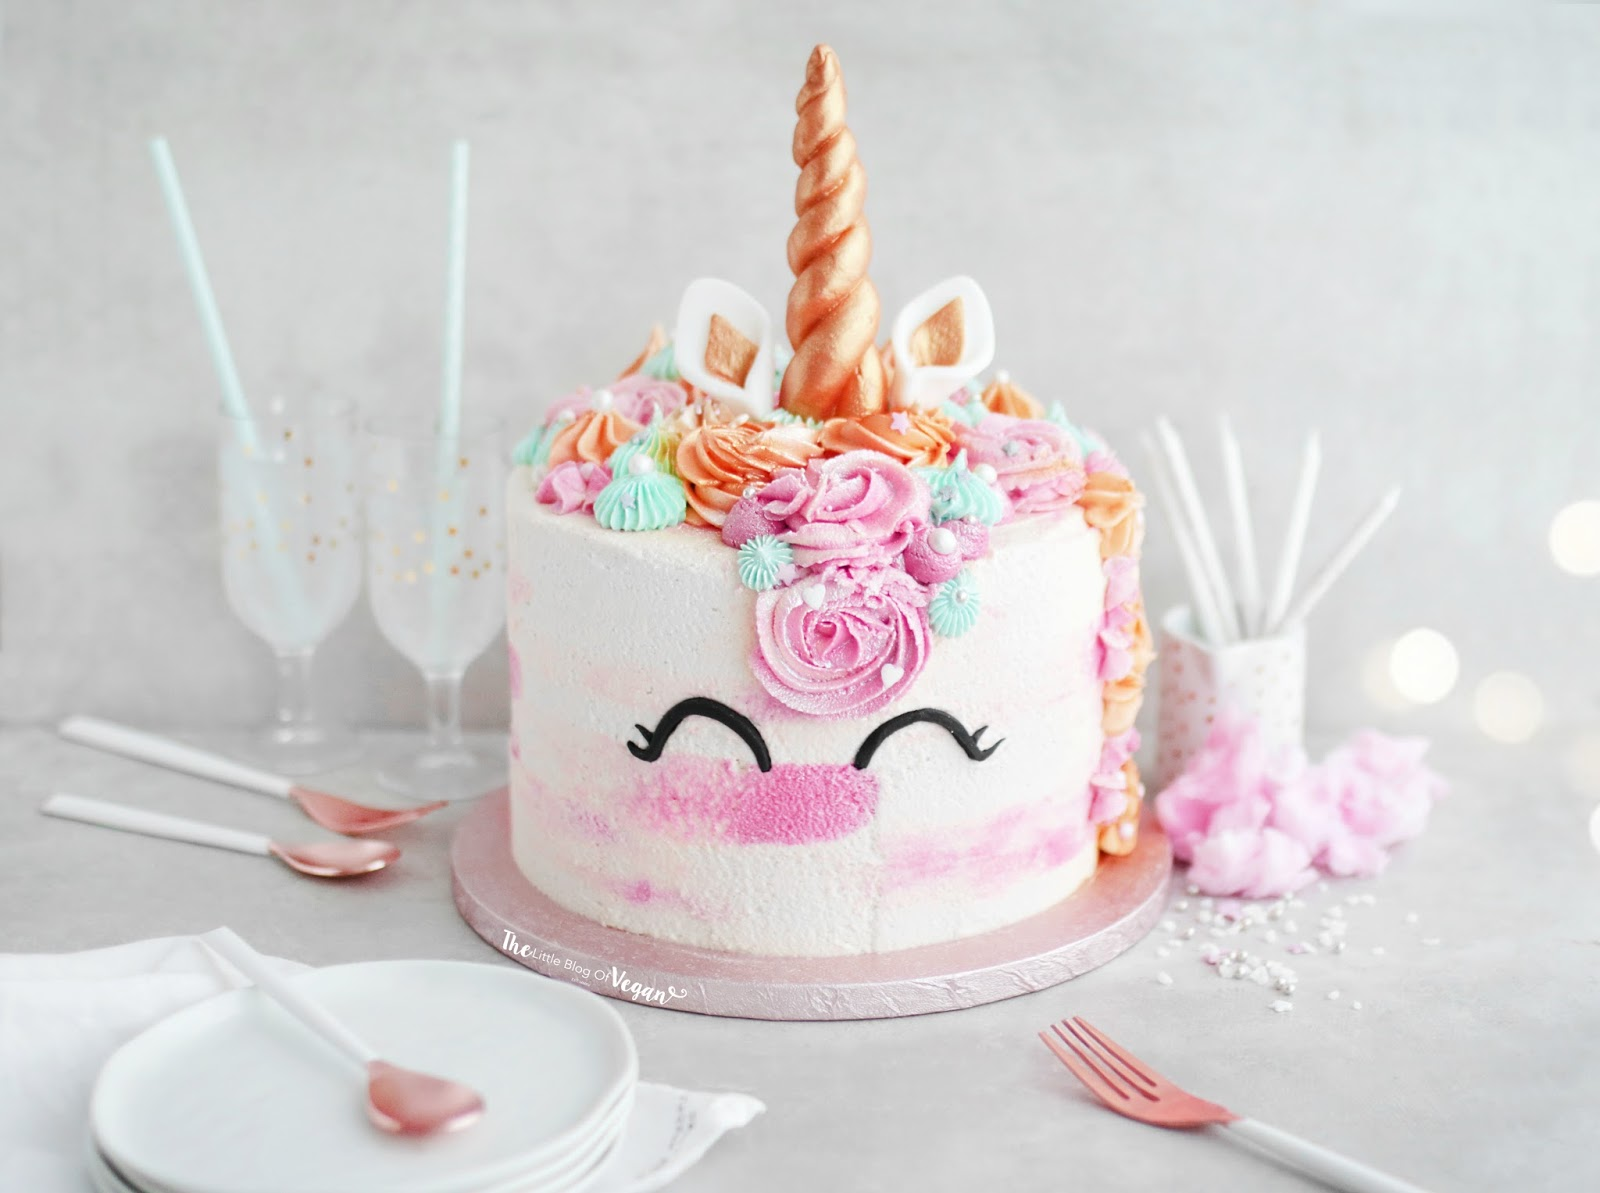 Happy Birthday Beautiful Unicorn Cake Images